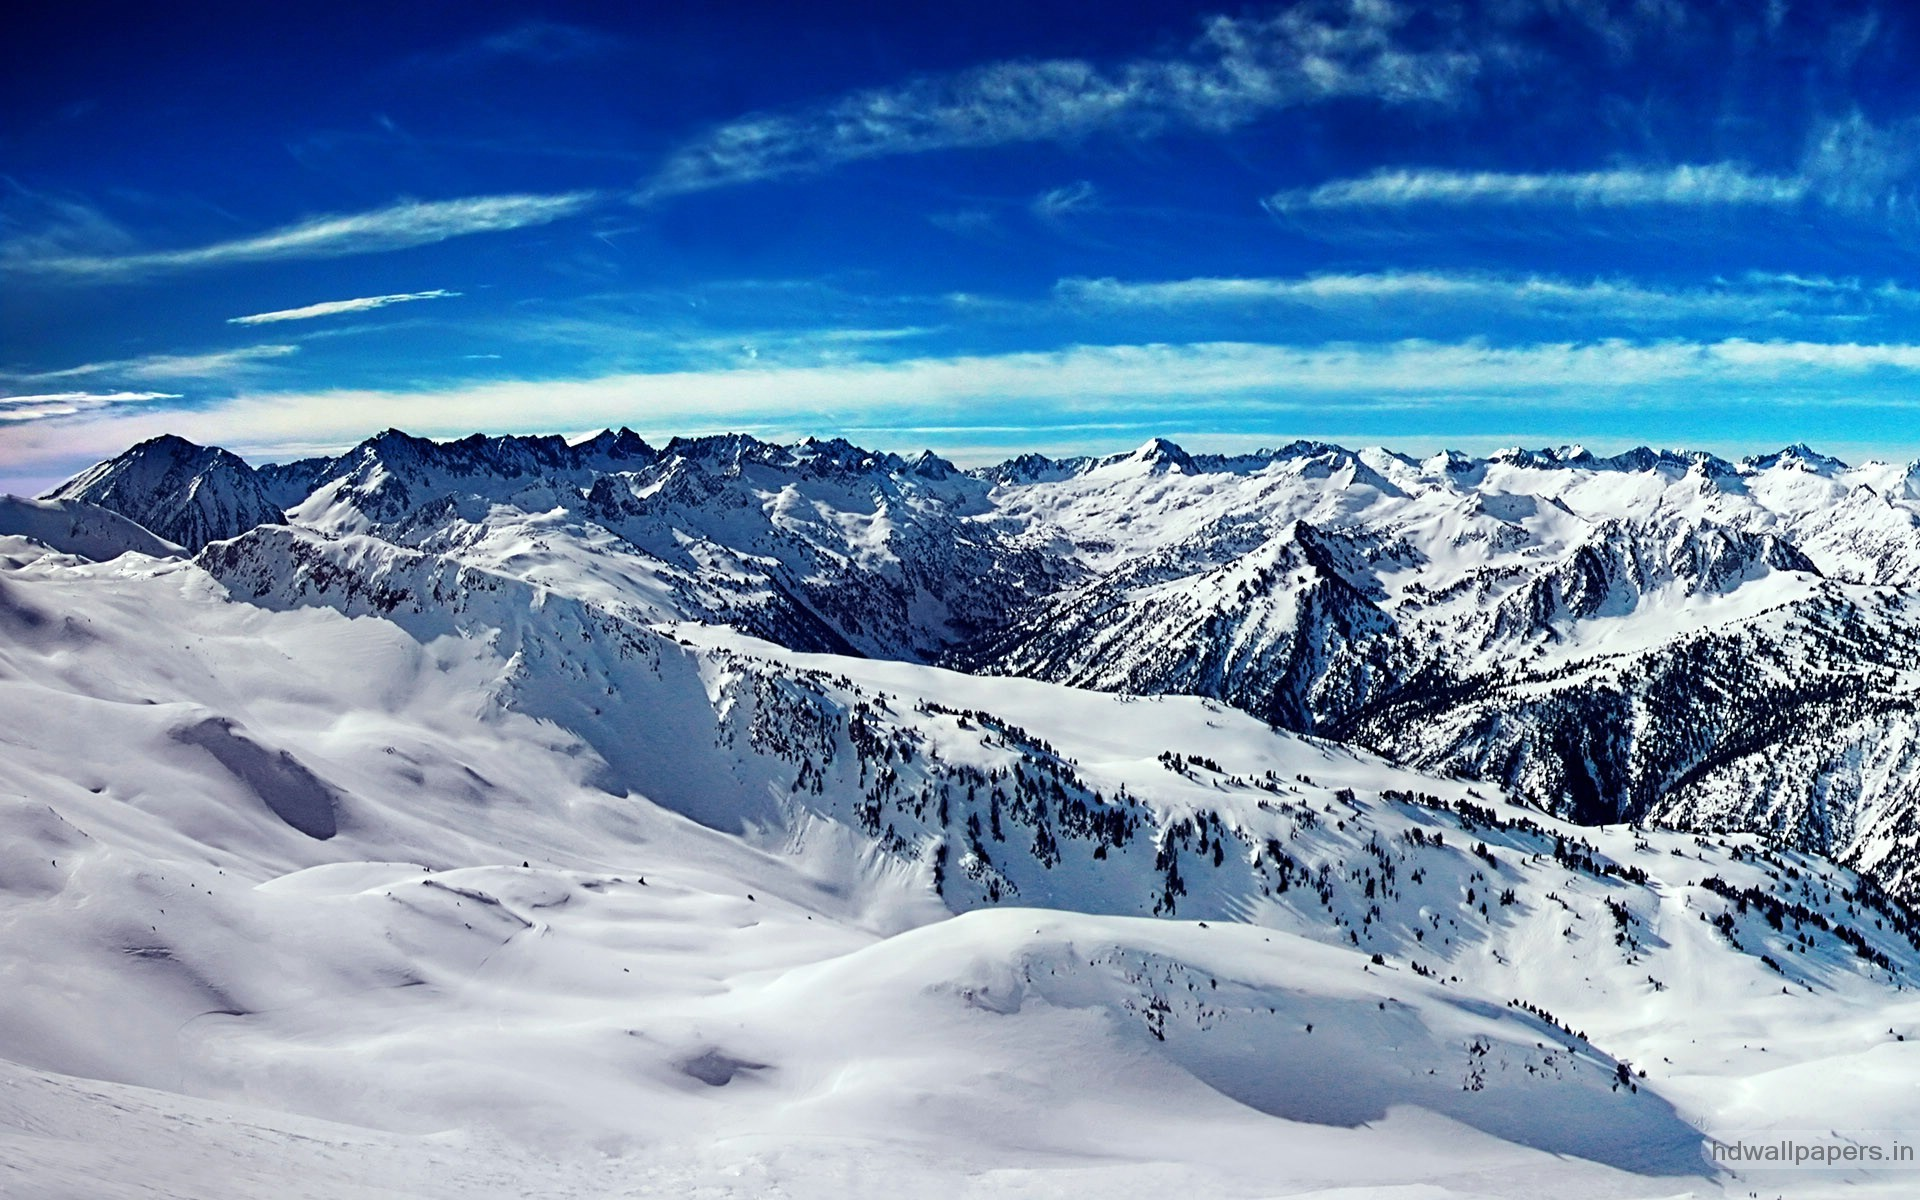 Beautiful scene of snow on the mountains and blue sky is a lovely present.  Description